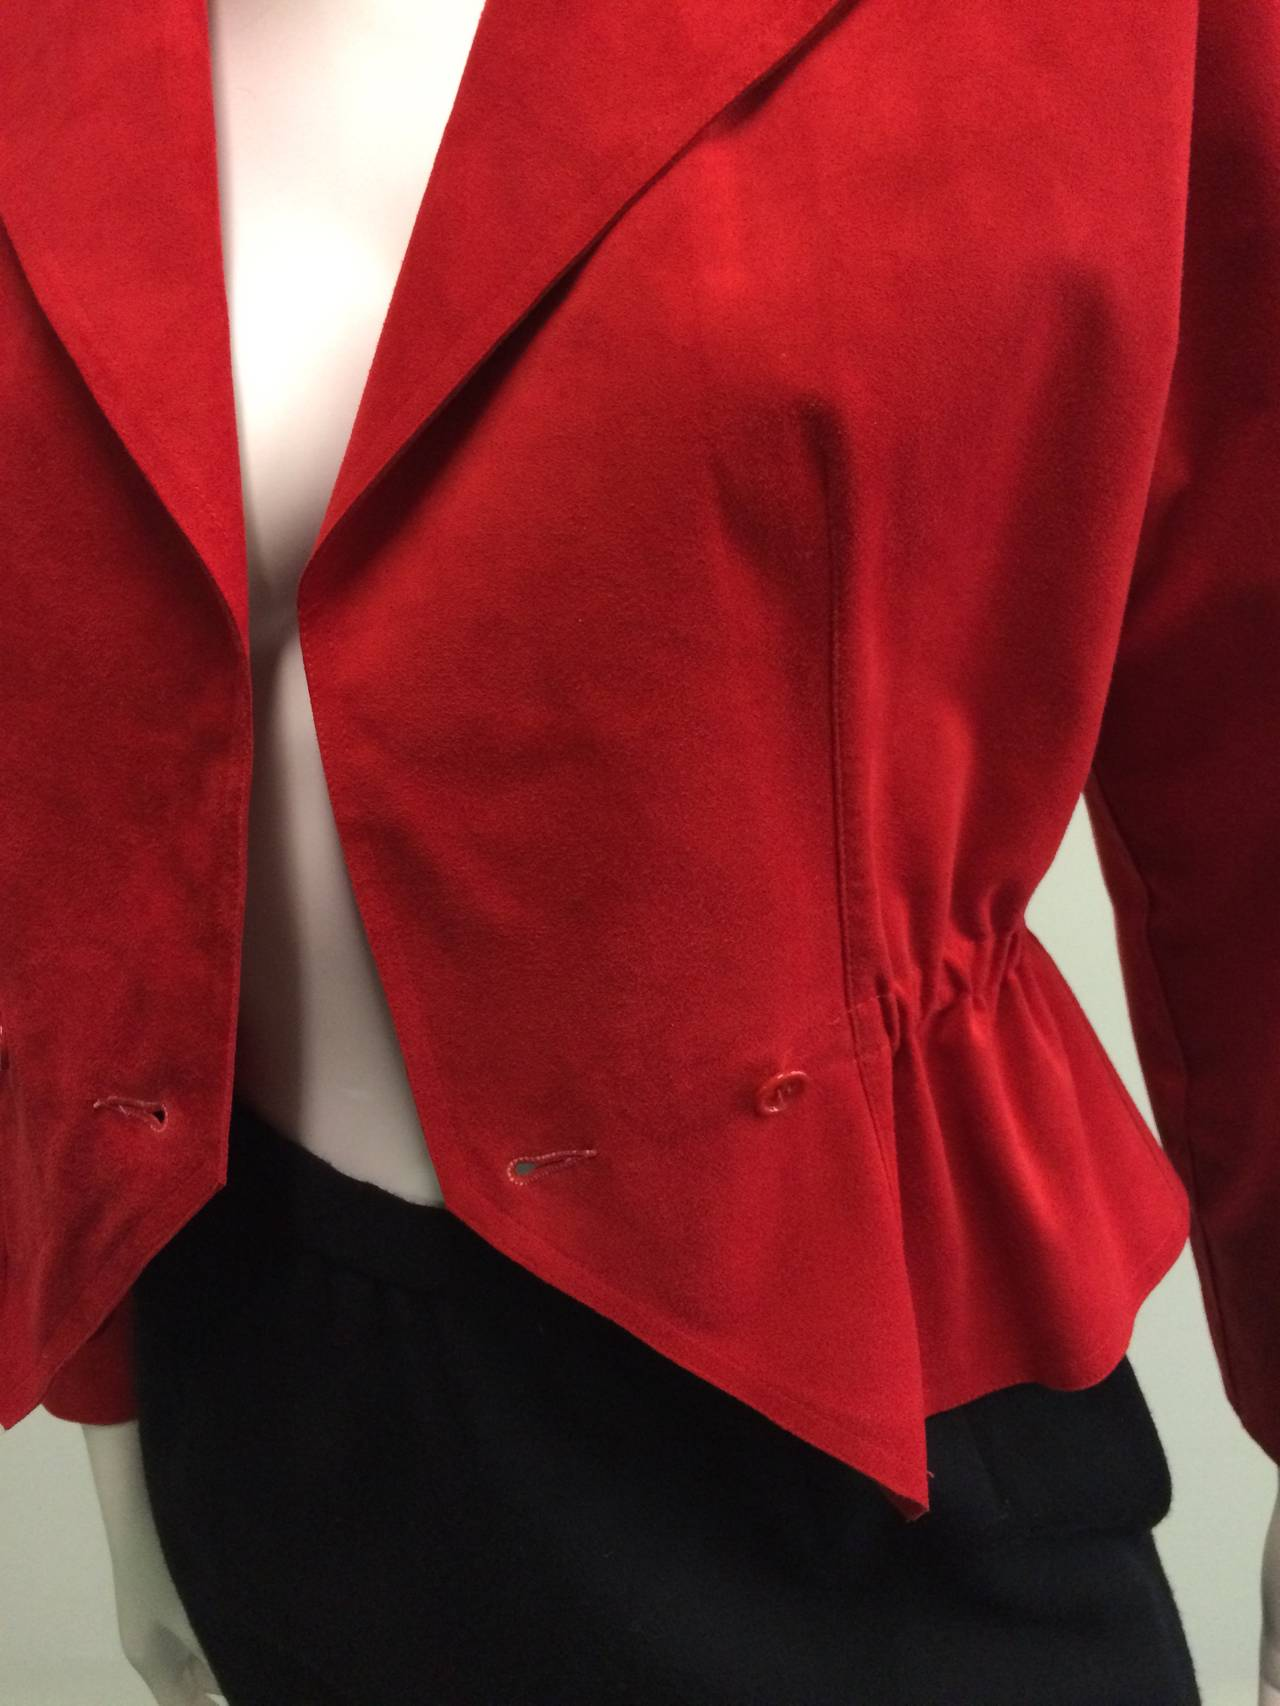 Halston 1970s Ultra Suede Red Jacket with Black Wool Skirt Size 4. 3